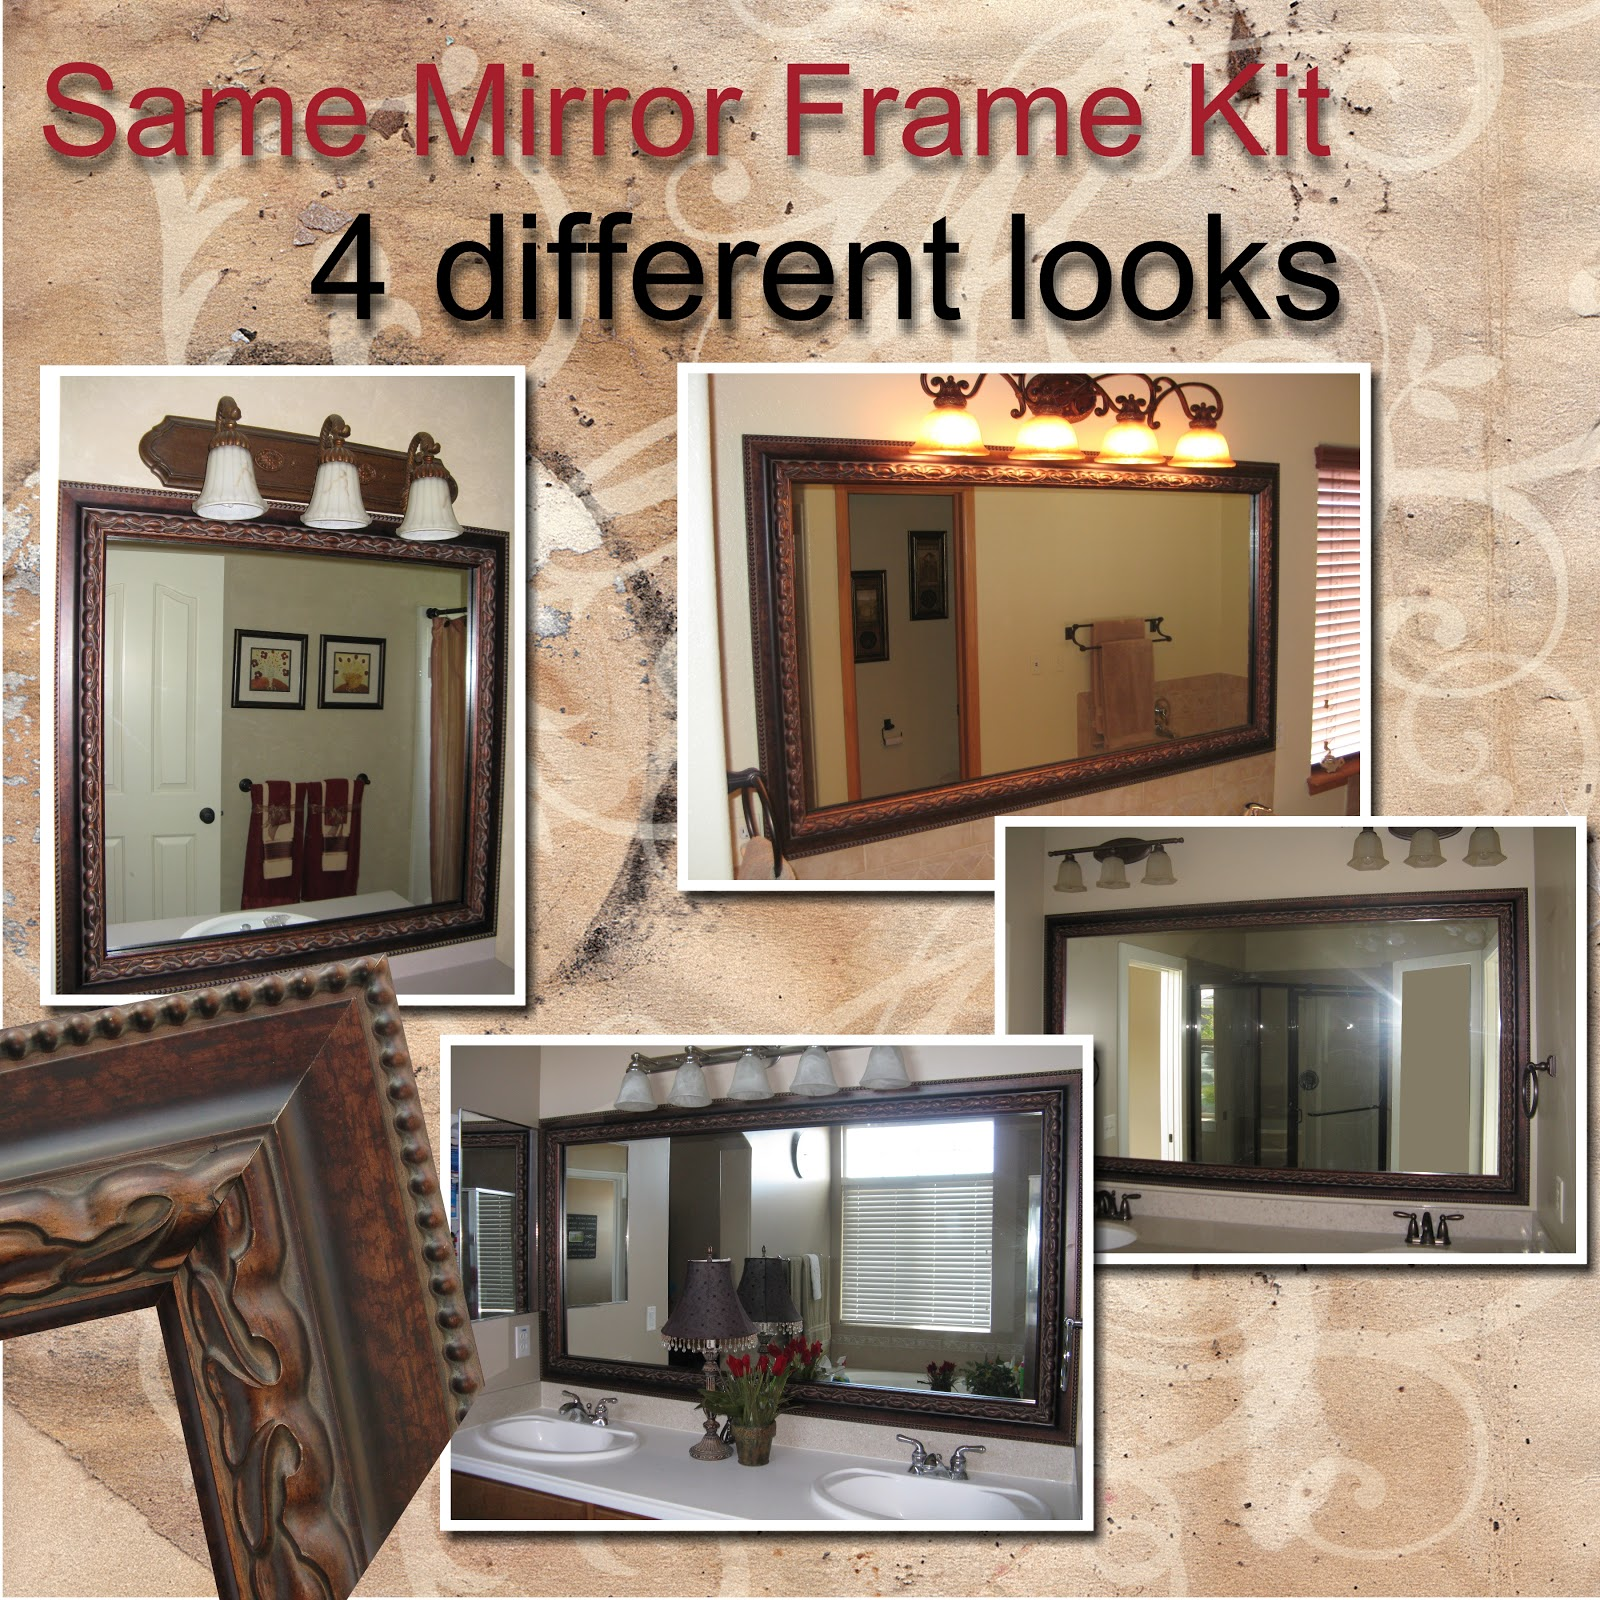 Tv In Bathroom Mirror Price Reflected Design Same Mirror Frame Kit 4 Different Looks